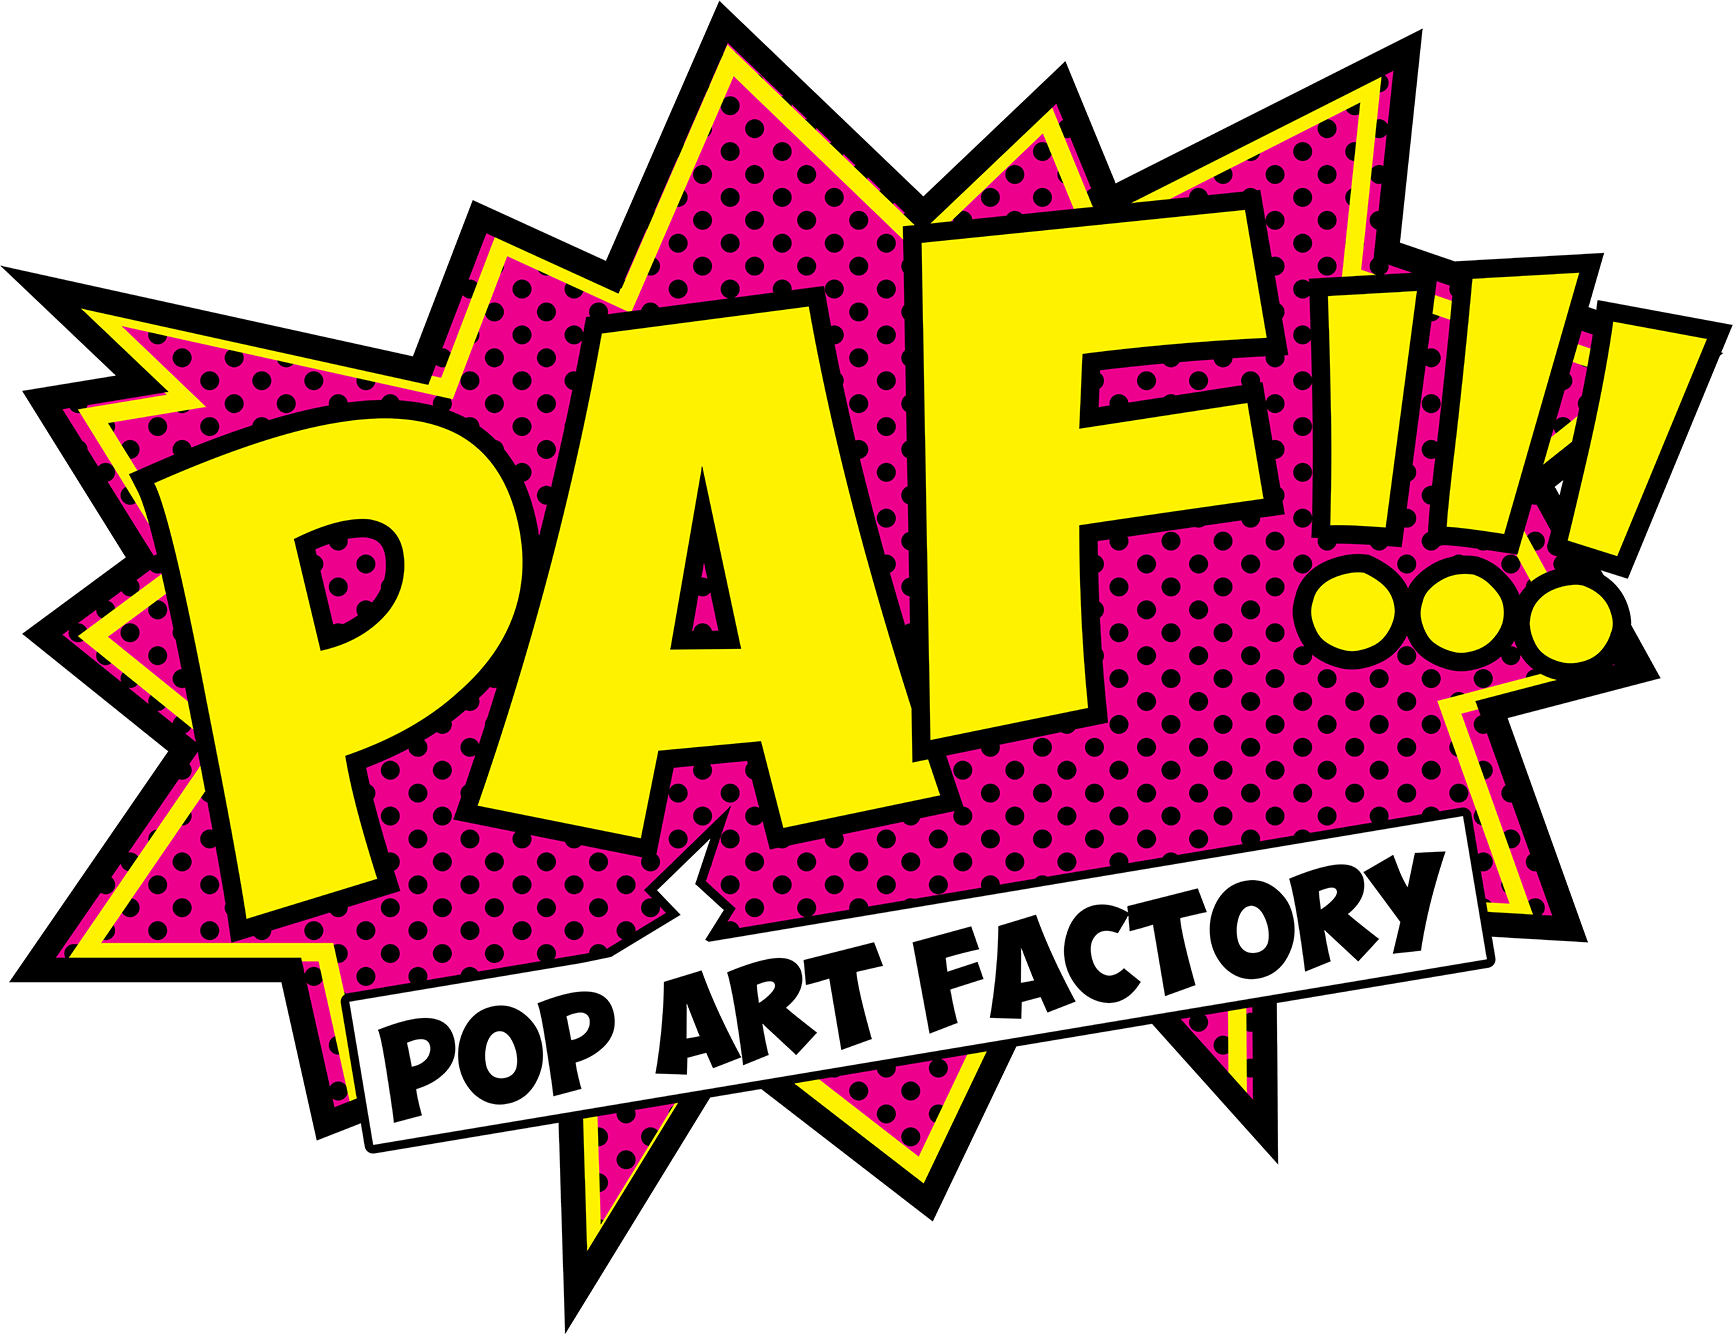 Pop Art Factory